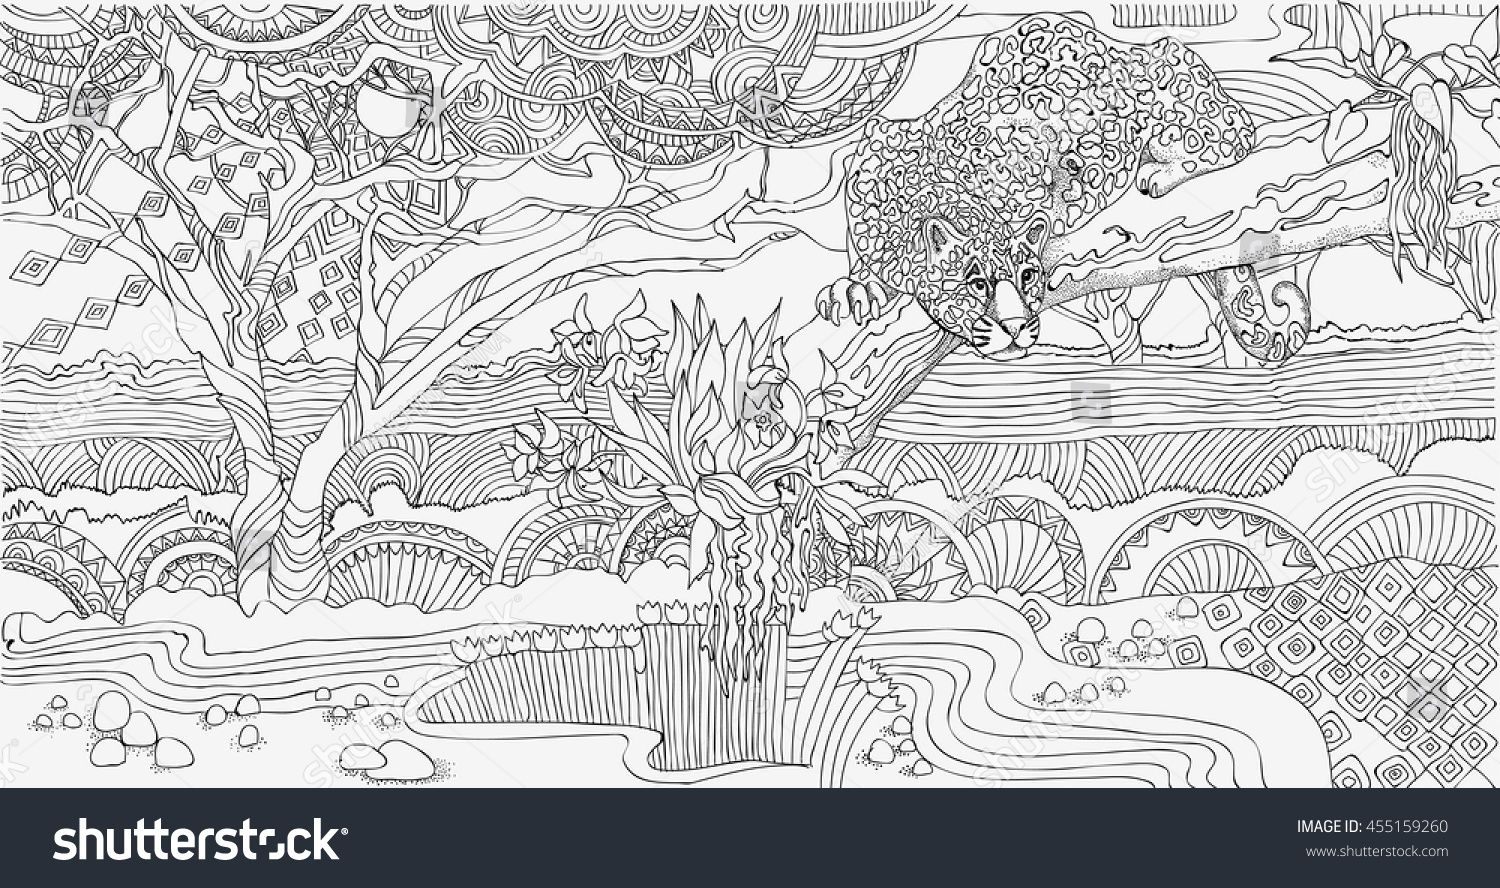 Coloring Pages Handsome African Landscape With A Cheetah Africa Wild Cat Kunstdruck Vektorgrafik Illustration